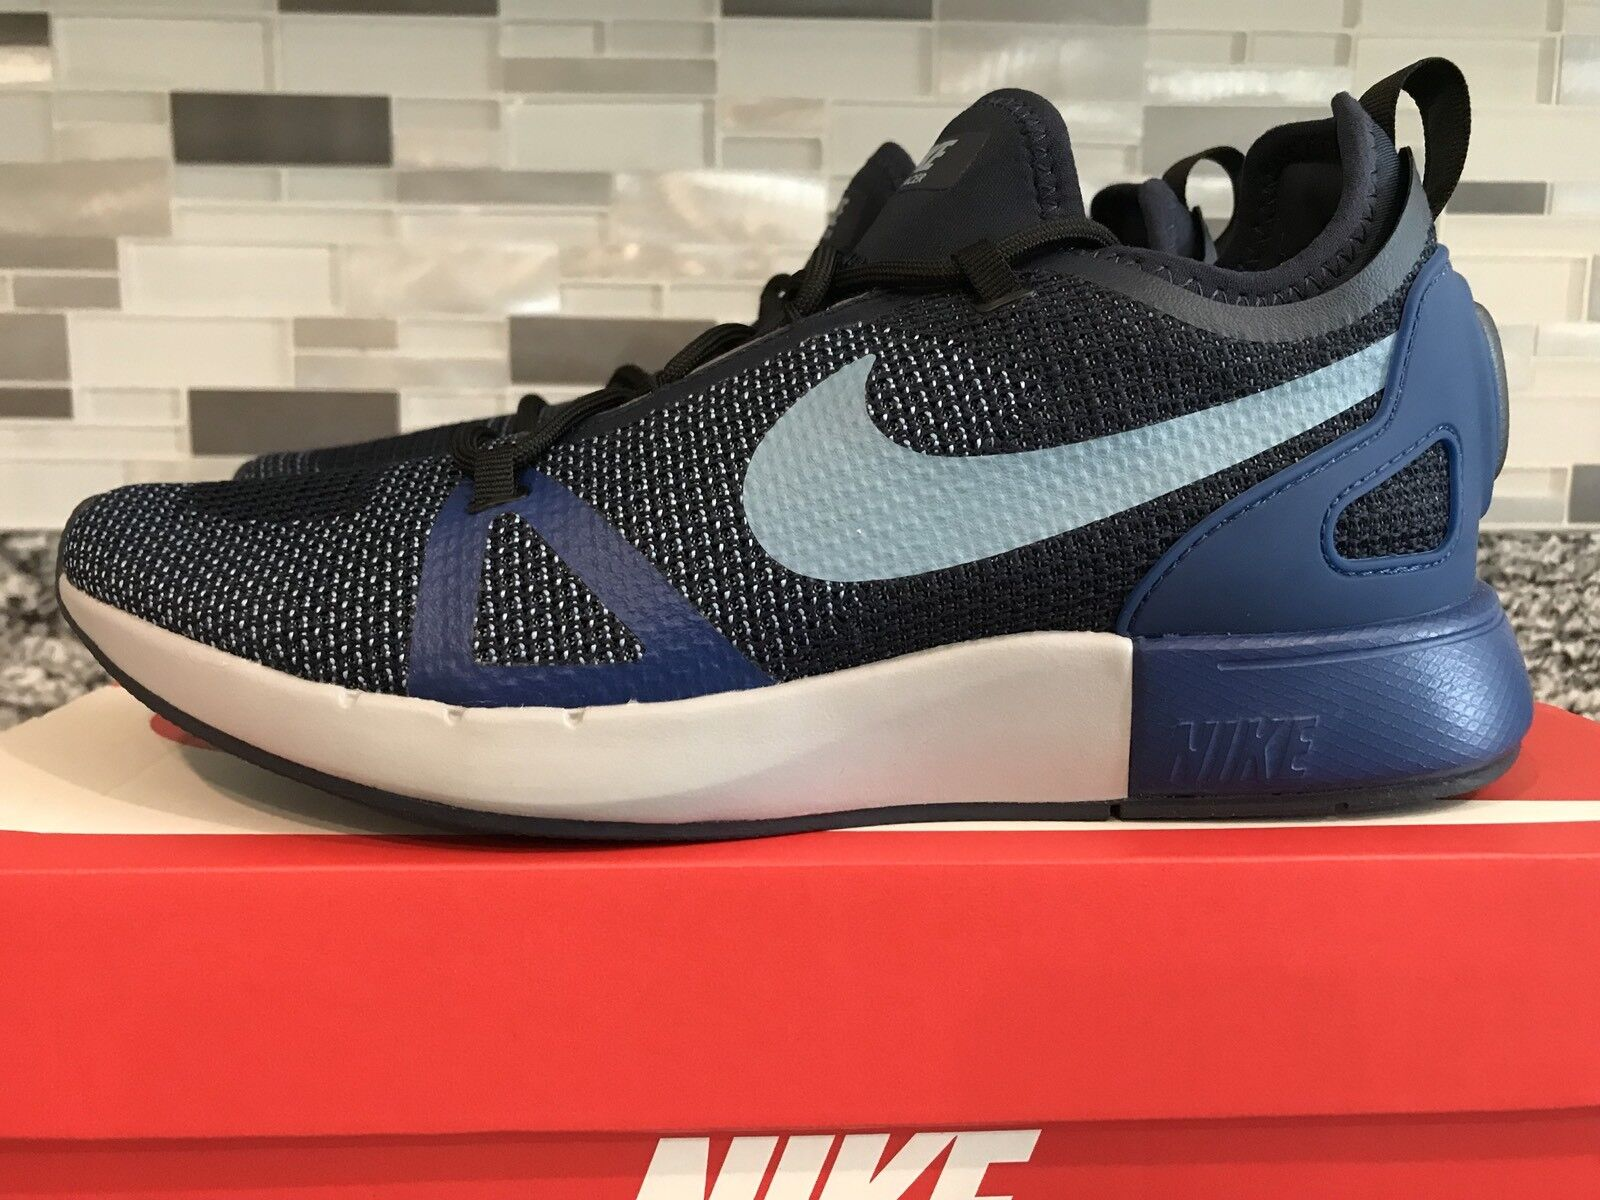 New Nike Duel Racer Mens Sz 8 Running shoes bluee Black Obsidian 918228-005